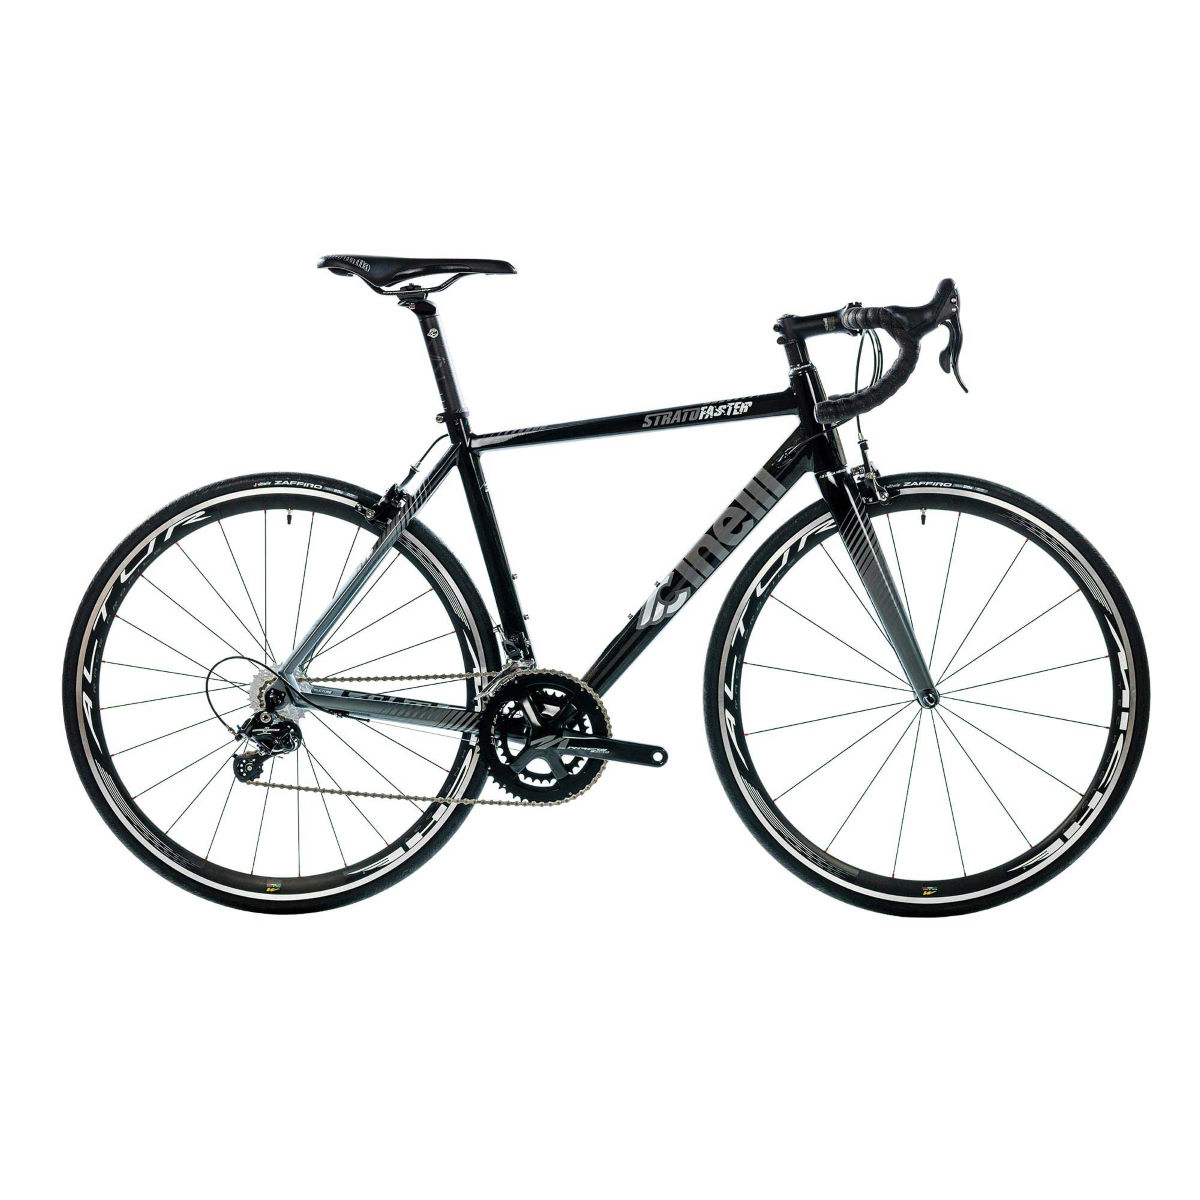 Vélo de route Cinelli Strato (Potenza, 2017) - XL Stock Bike Noir